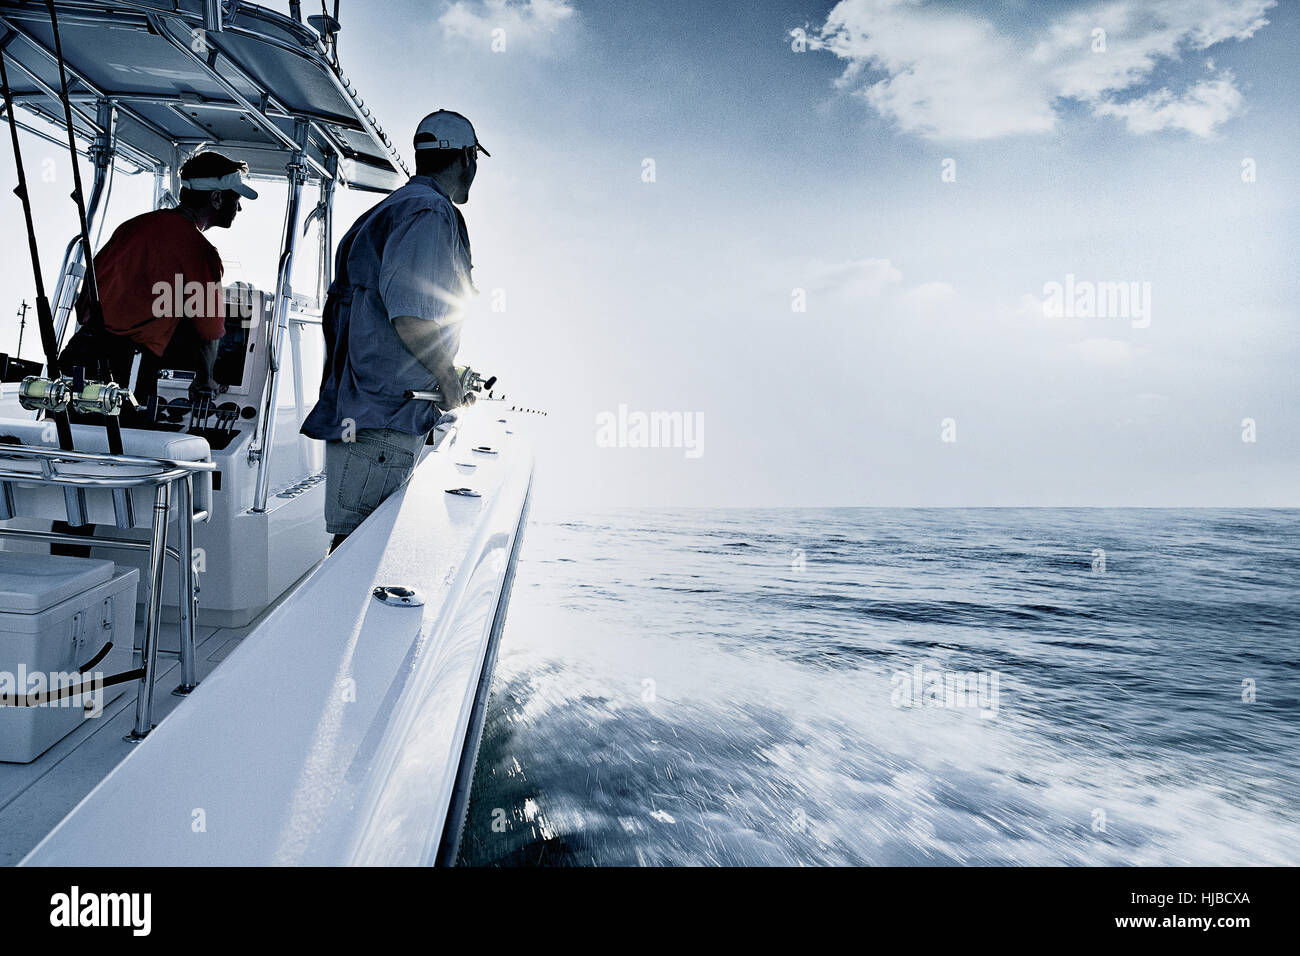 Monochromatic shot of two men driving and fishing from speedboat, Miami, USA - Stock Image